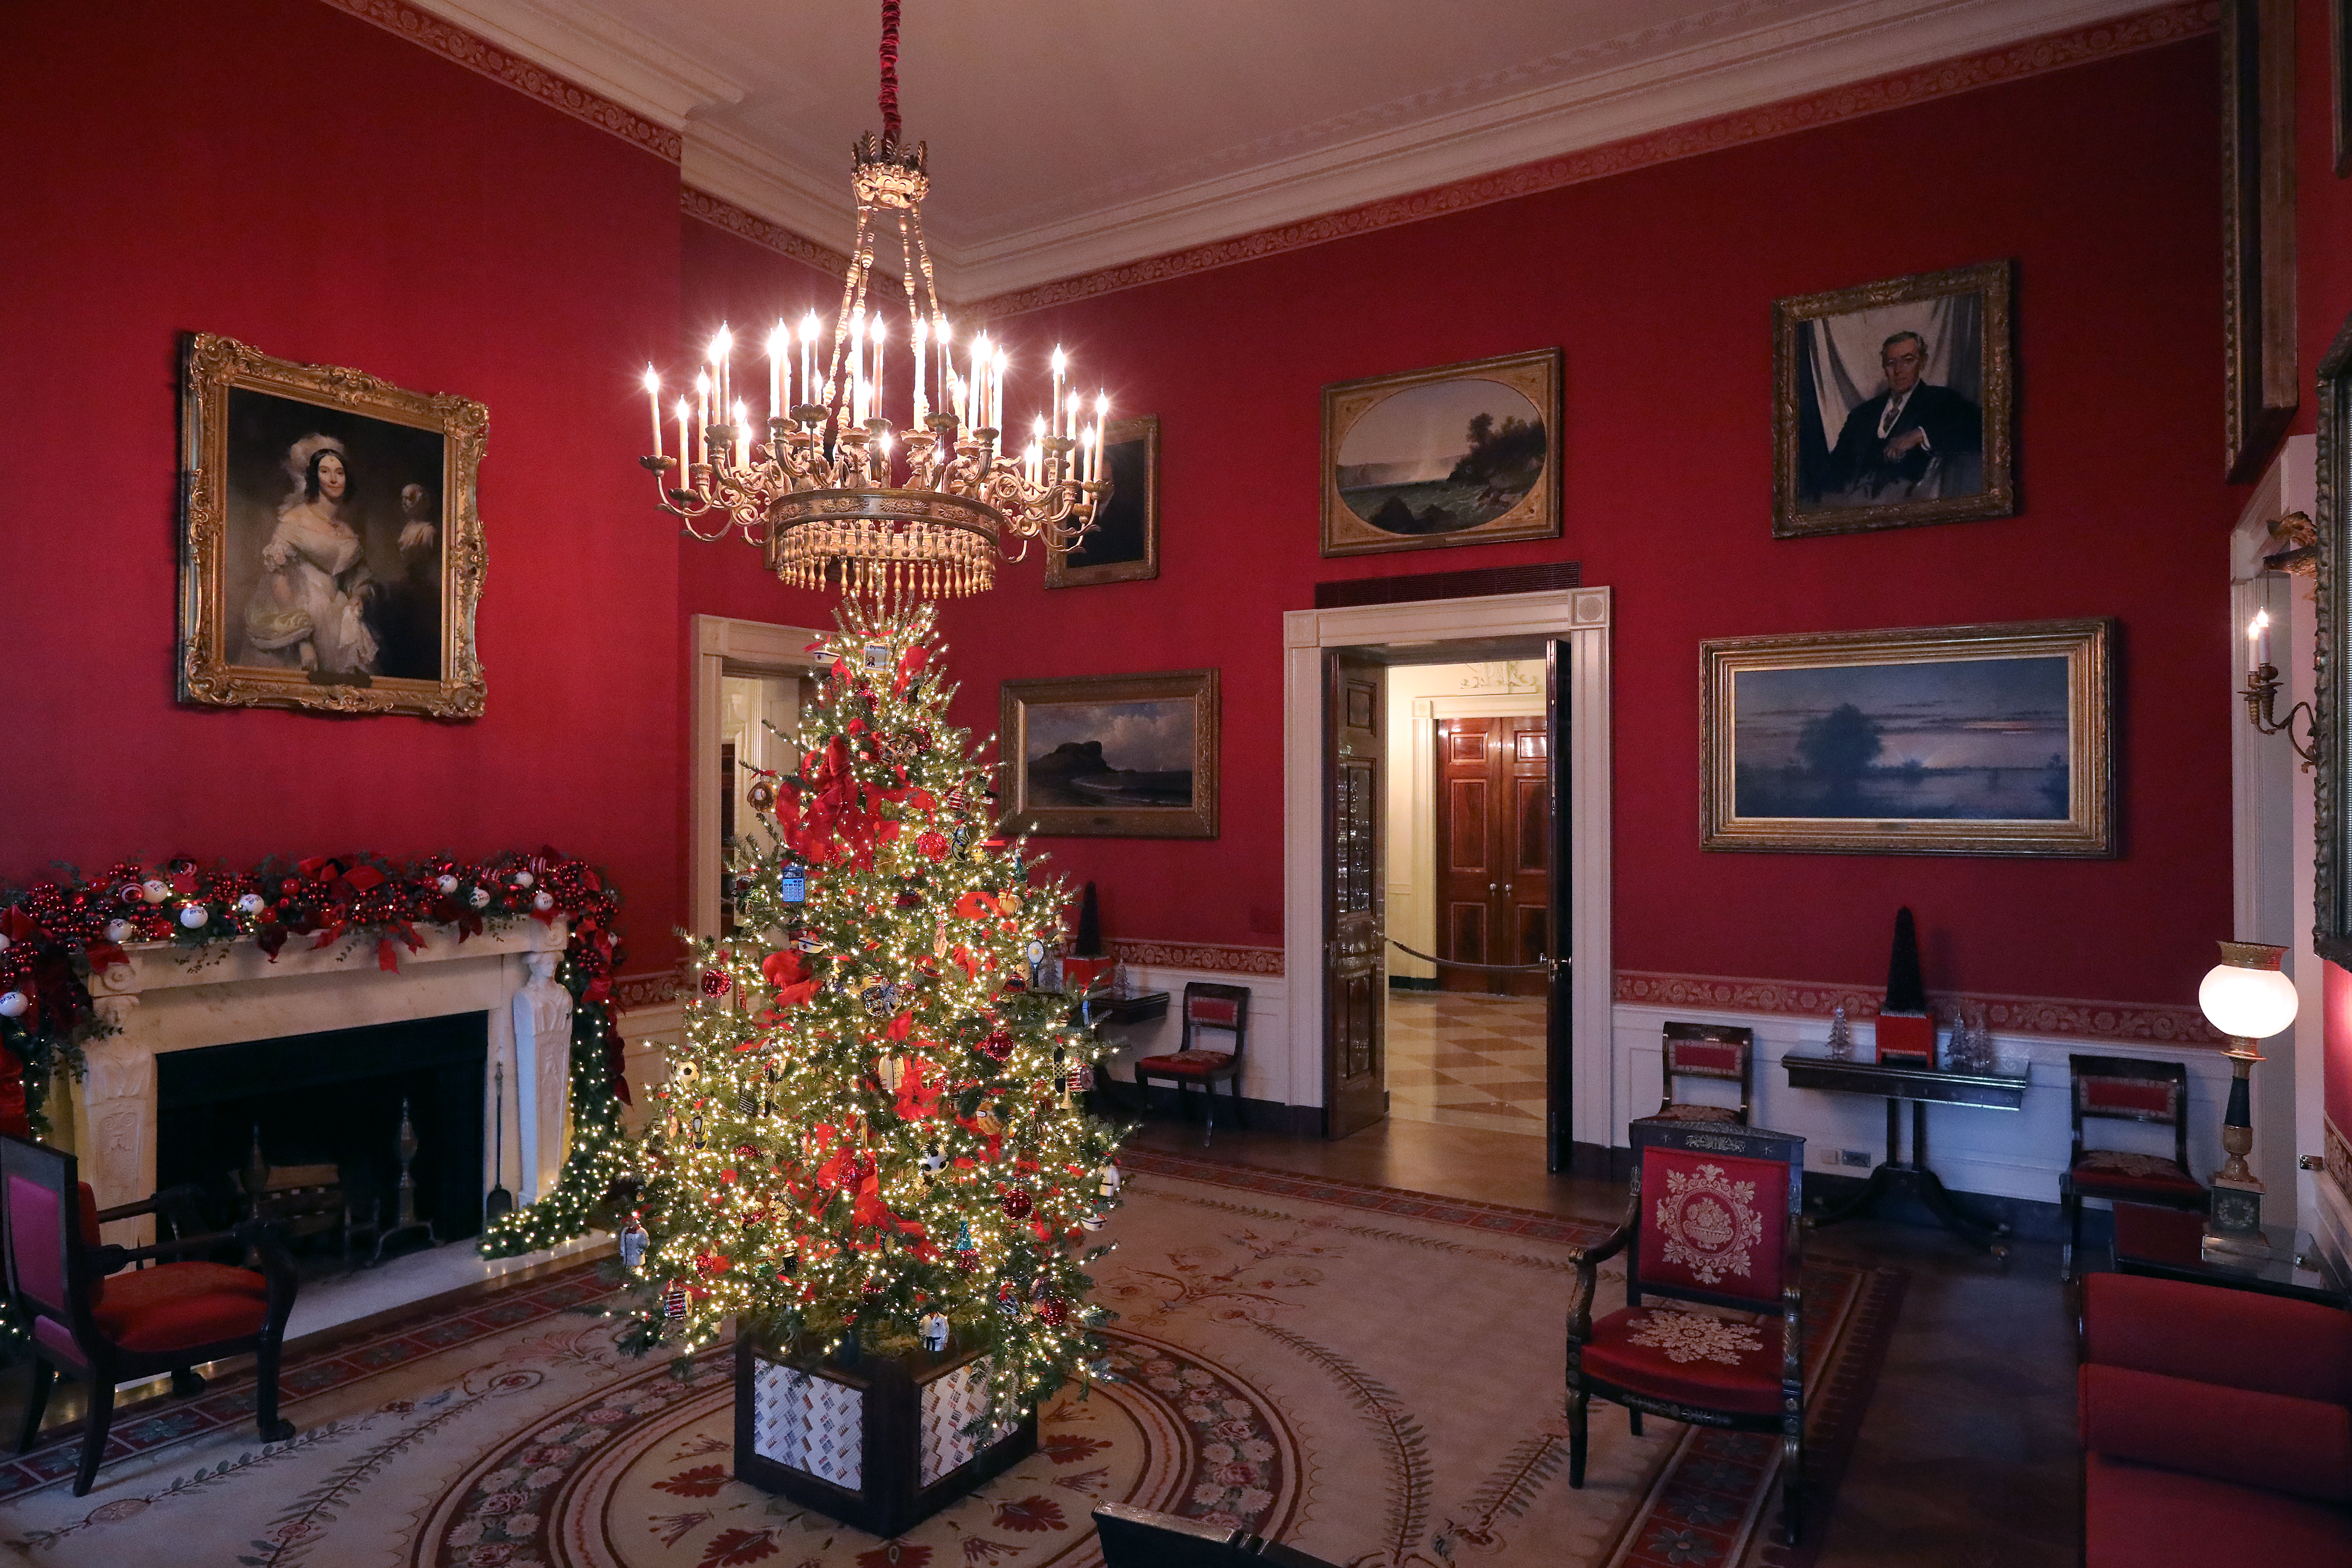 Carrying first lady Melania Trump's 'Be Best' initiative, the Red Room is decorated to 'celebrate children through the décor, which displays ways in which children can excel in their own path' at the White House November 26, 2018 in Washington, DC. (Credit: Chip Somodevilla/Getty Images)